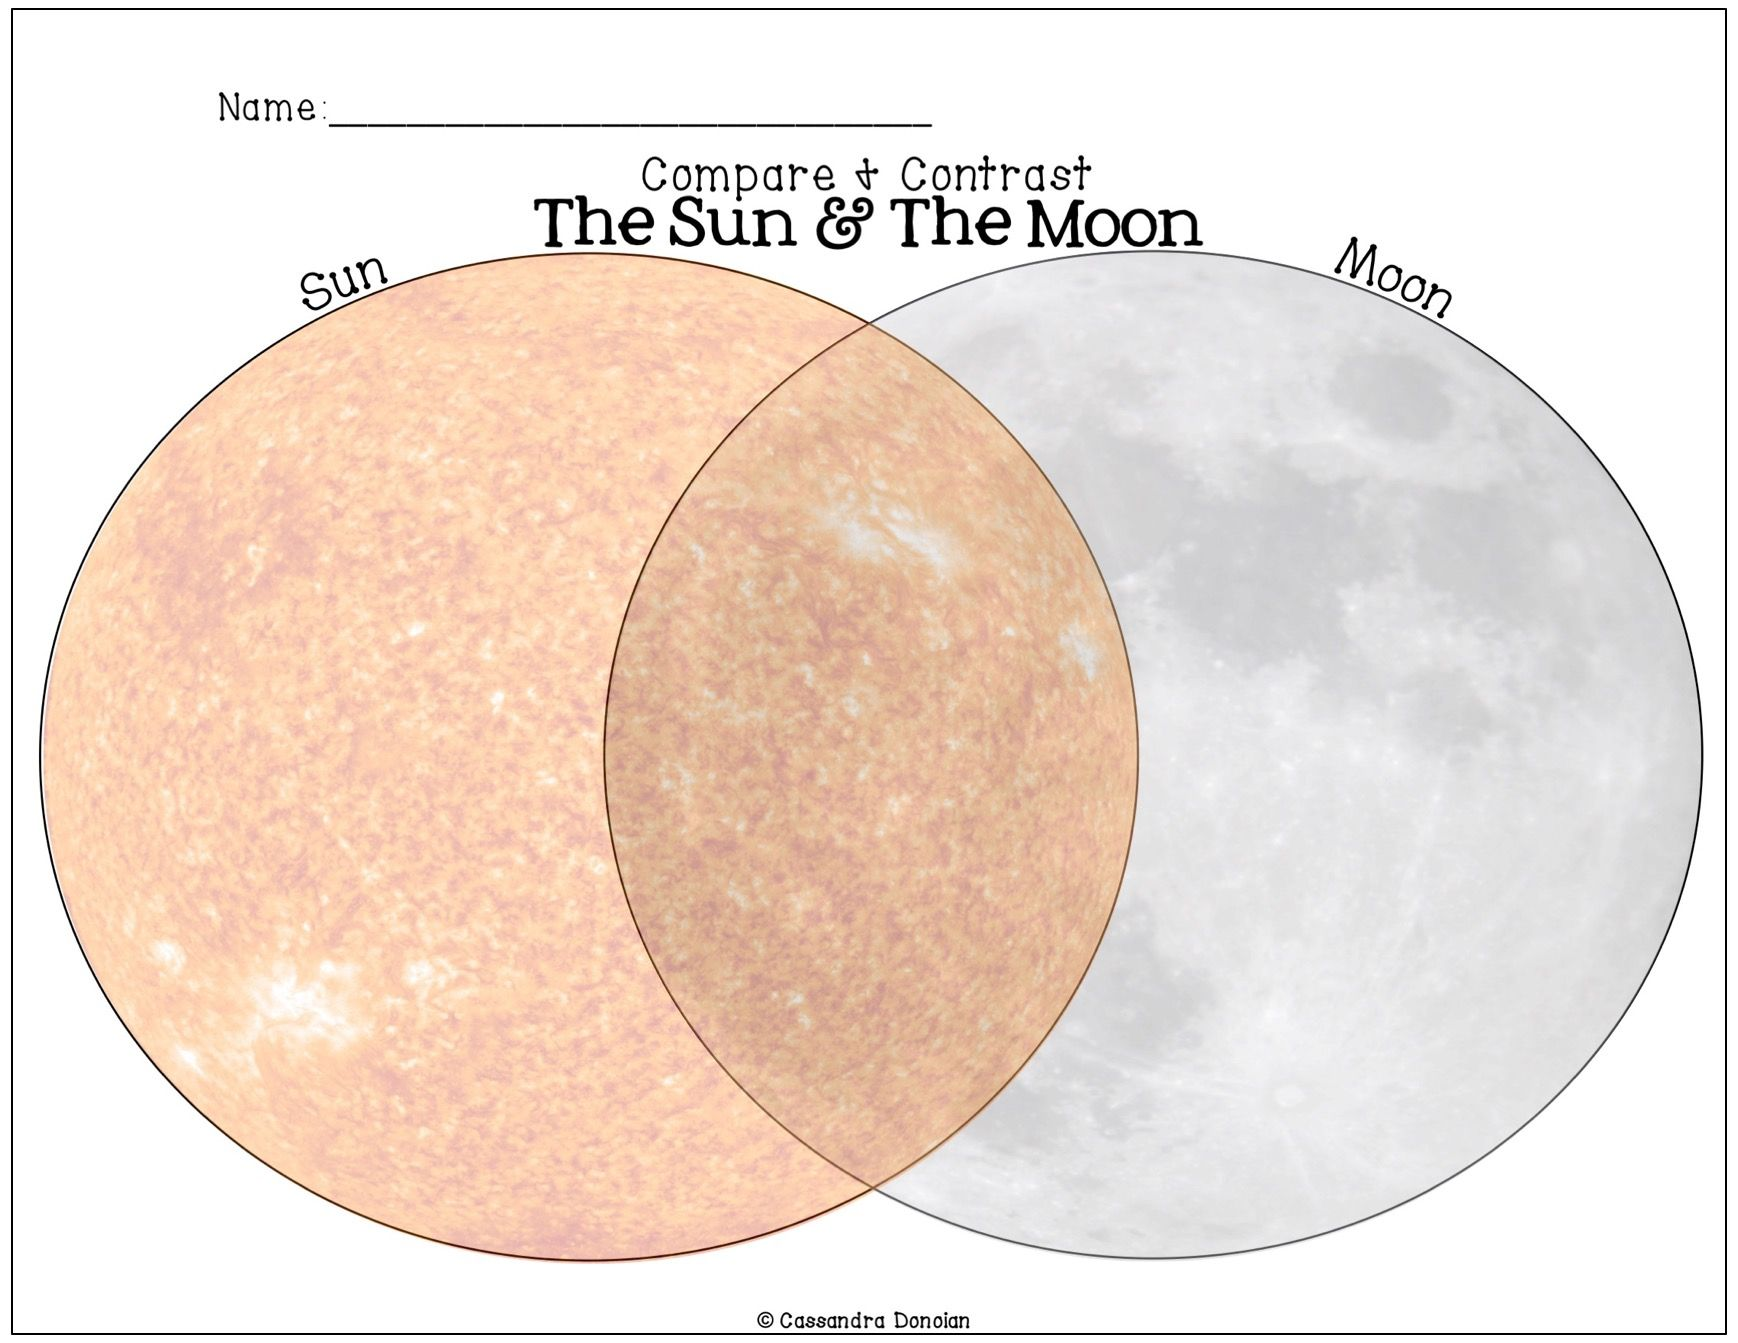 Perfect Graphic Organizer To Compare And Contrast The Sun